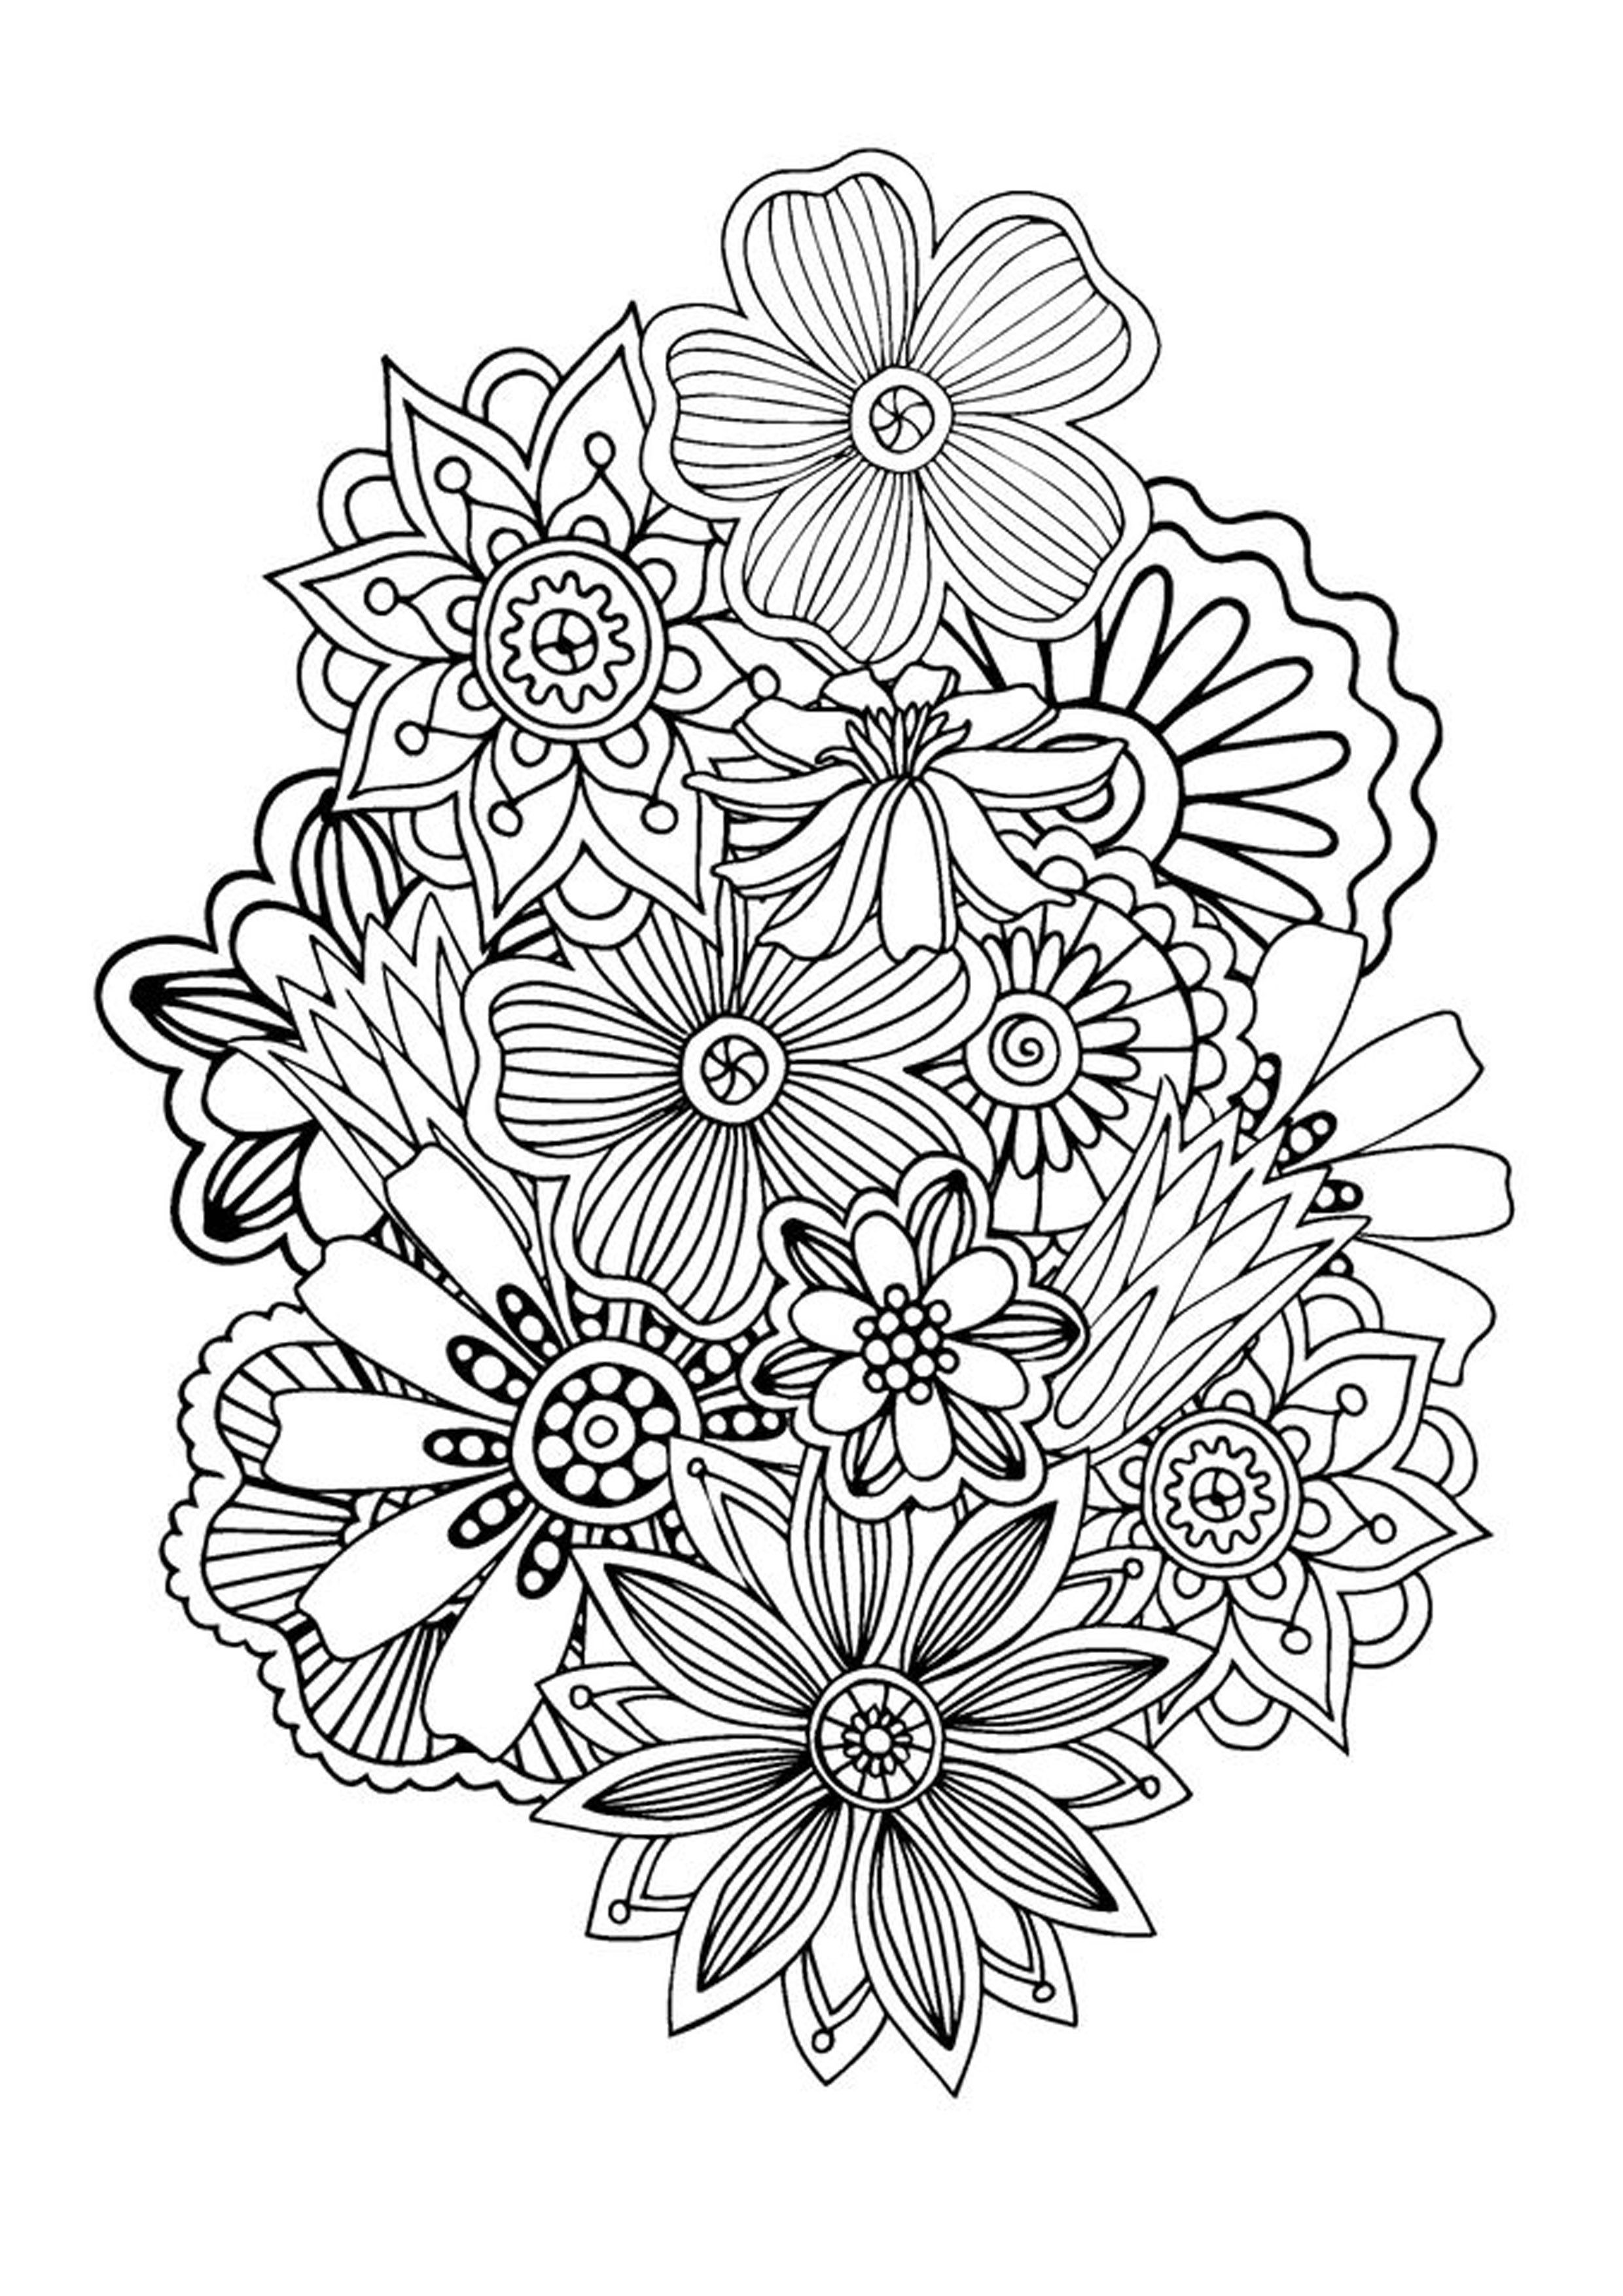 Zen And Anti Stress Coloring Pages For Adults Abstract Coloring Pages Antistress Coloring Designs Coloring Books